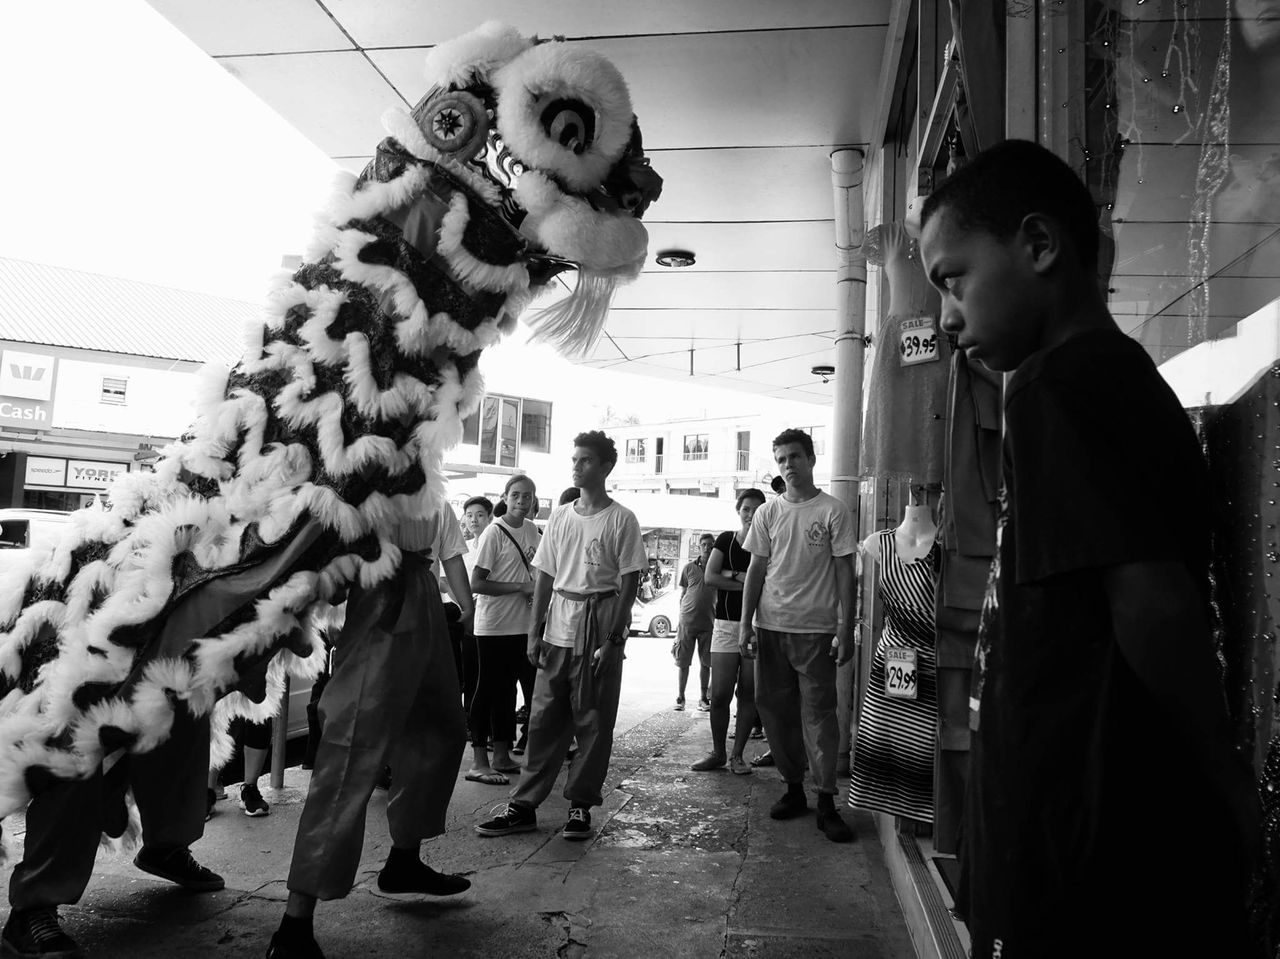 Adapted To The City People Teamwork Chinese New Year SUVA FIJI ISLANDS Streetphotography Blackandwhite Black & White Street Photography